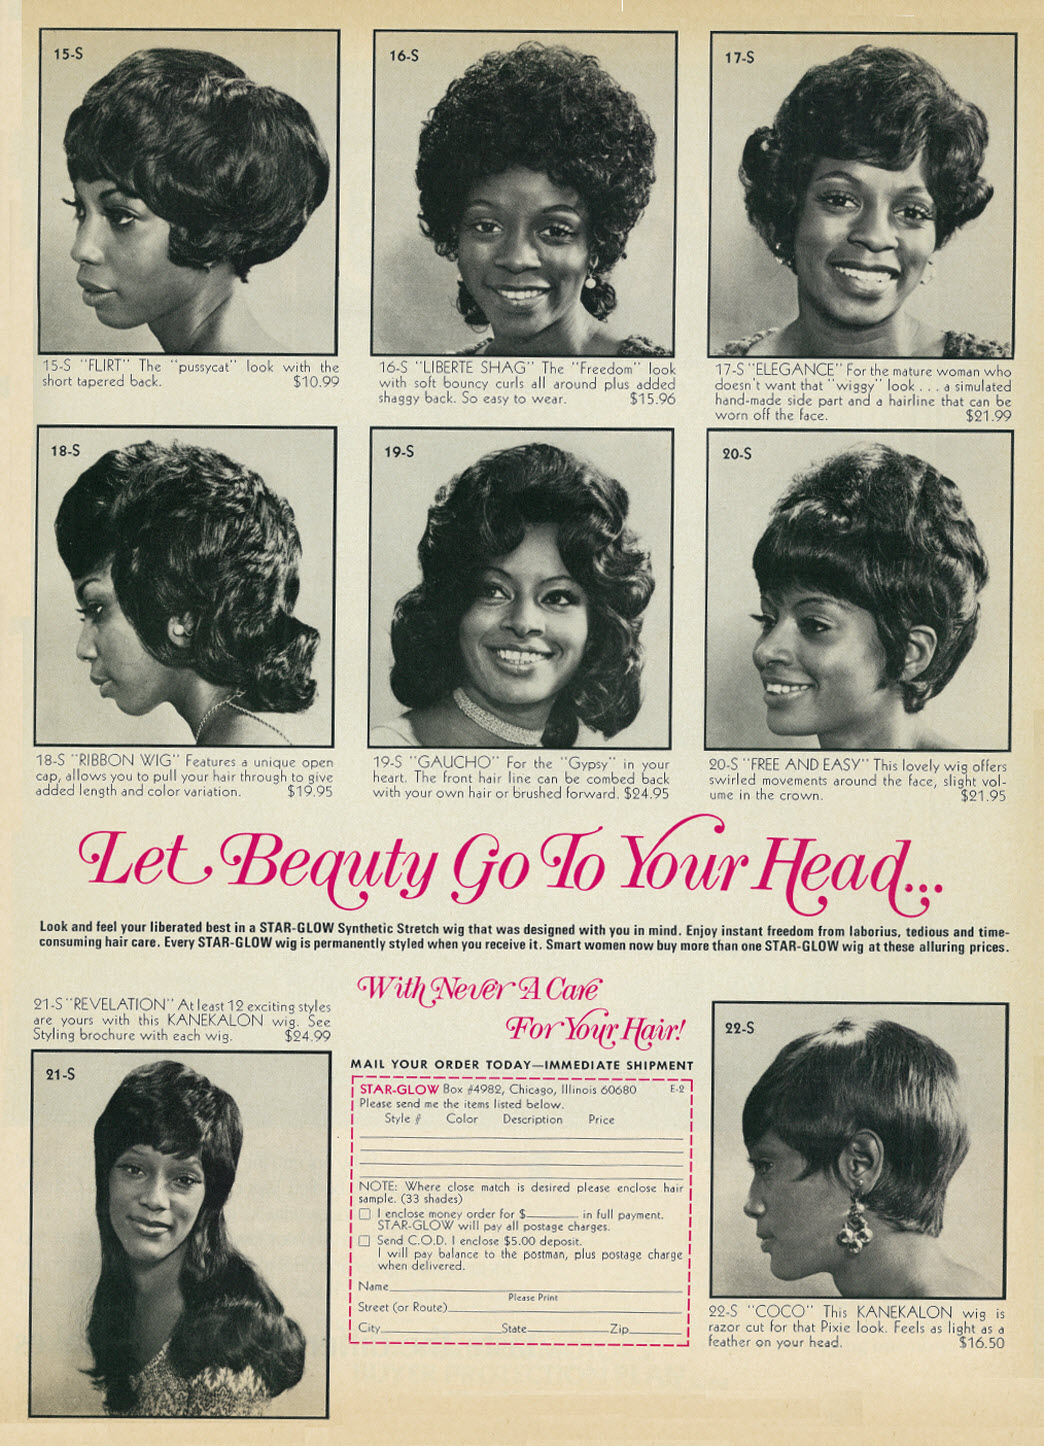 Published black hair beauty styles by Ebony Magazine March 1972 - Vol.27, No.5.